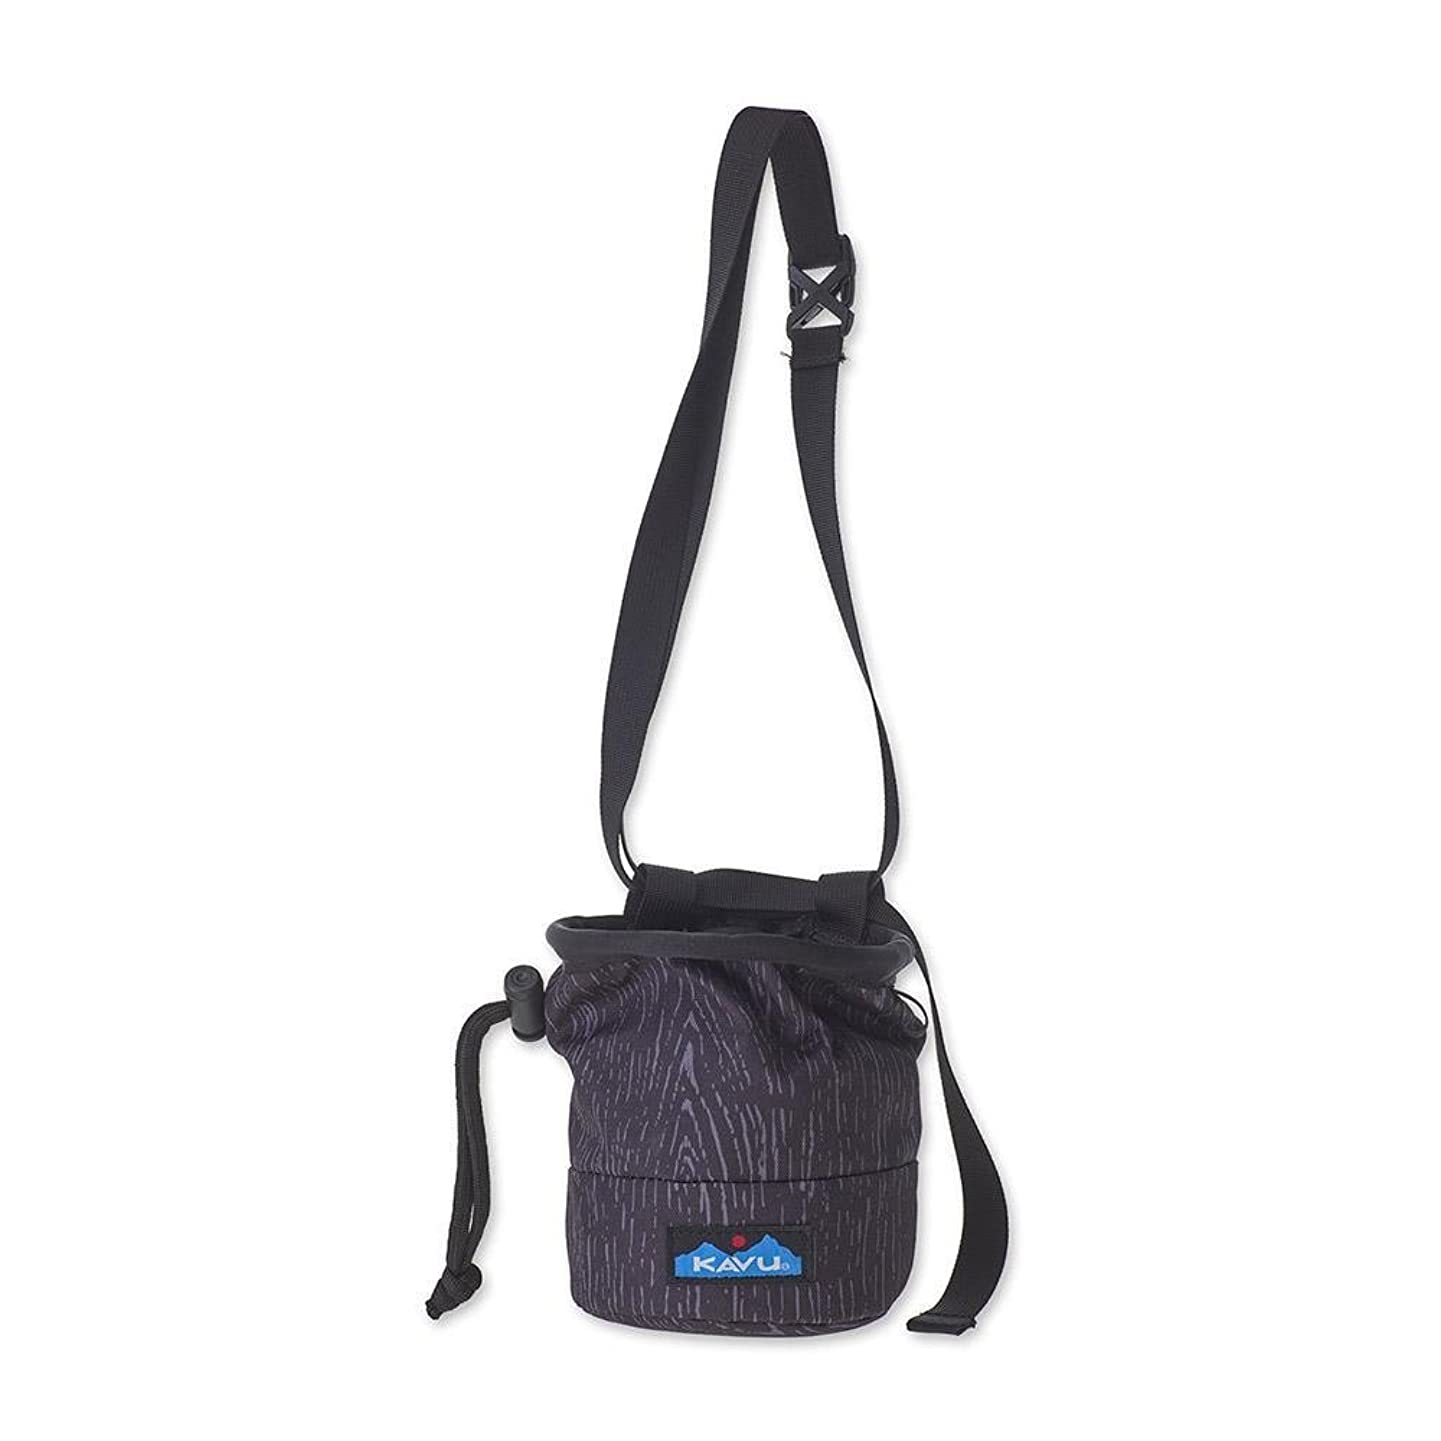 KAVU Peak Seeker Rock Climbing Chalk Bag with Belt and Cord-Lock Cinch